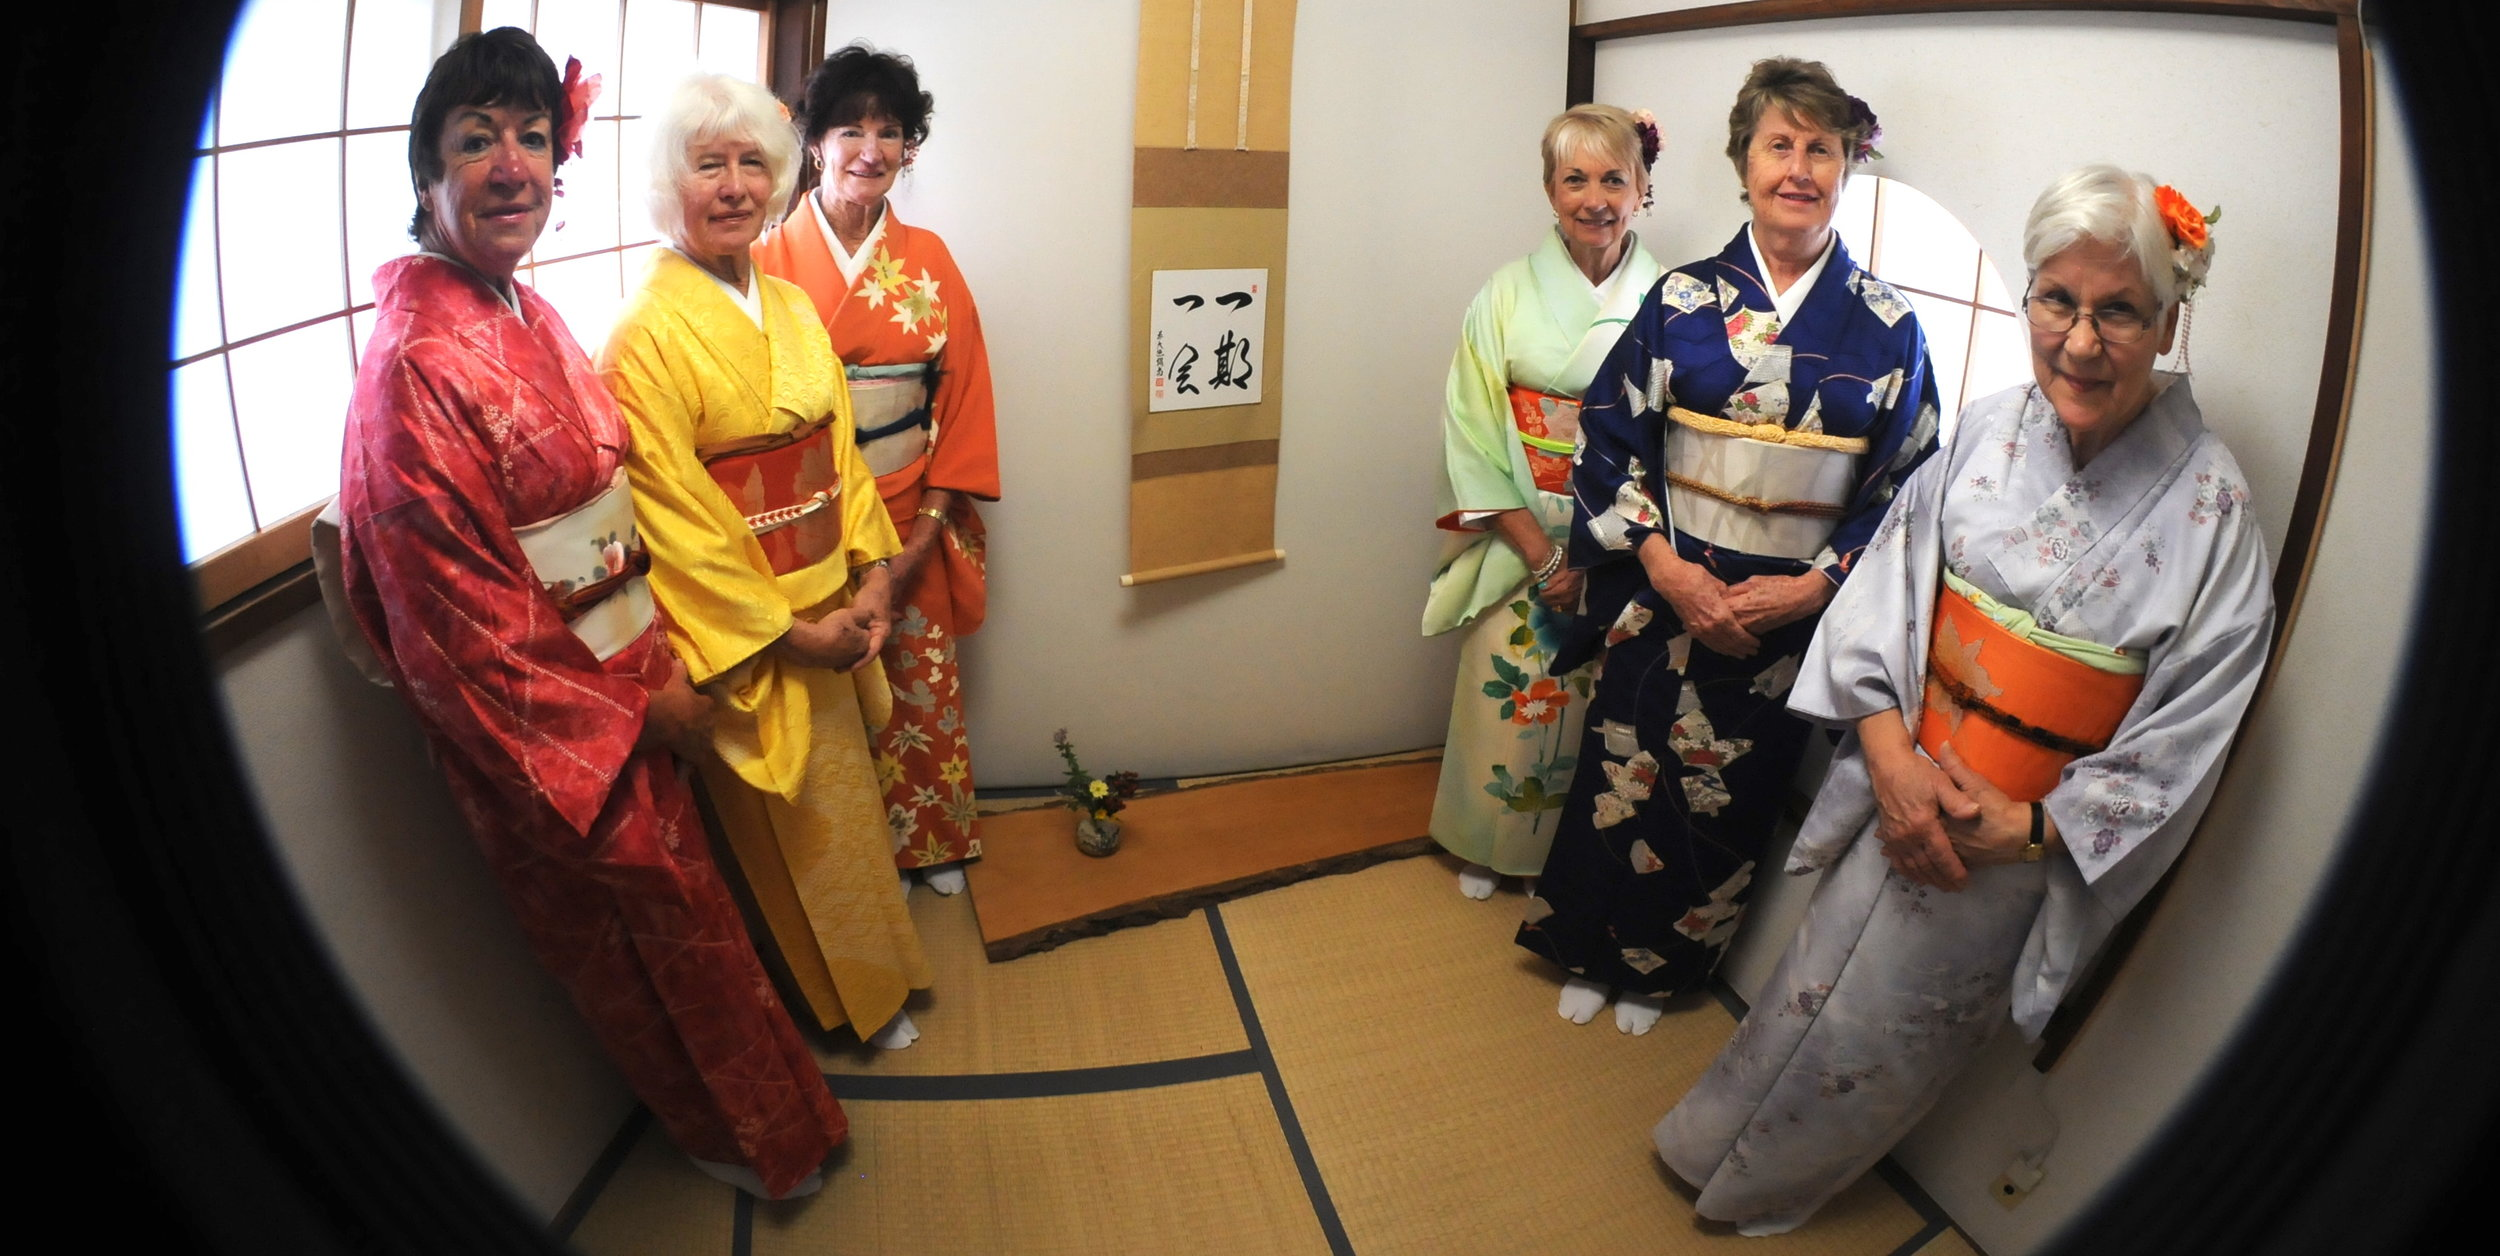 Dressed and ready for the tea ceremony